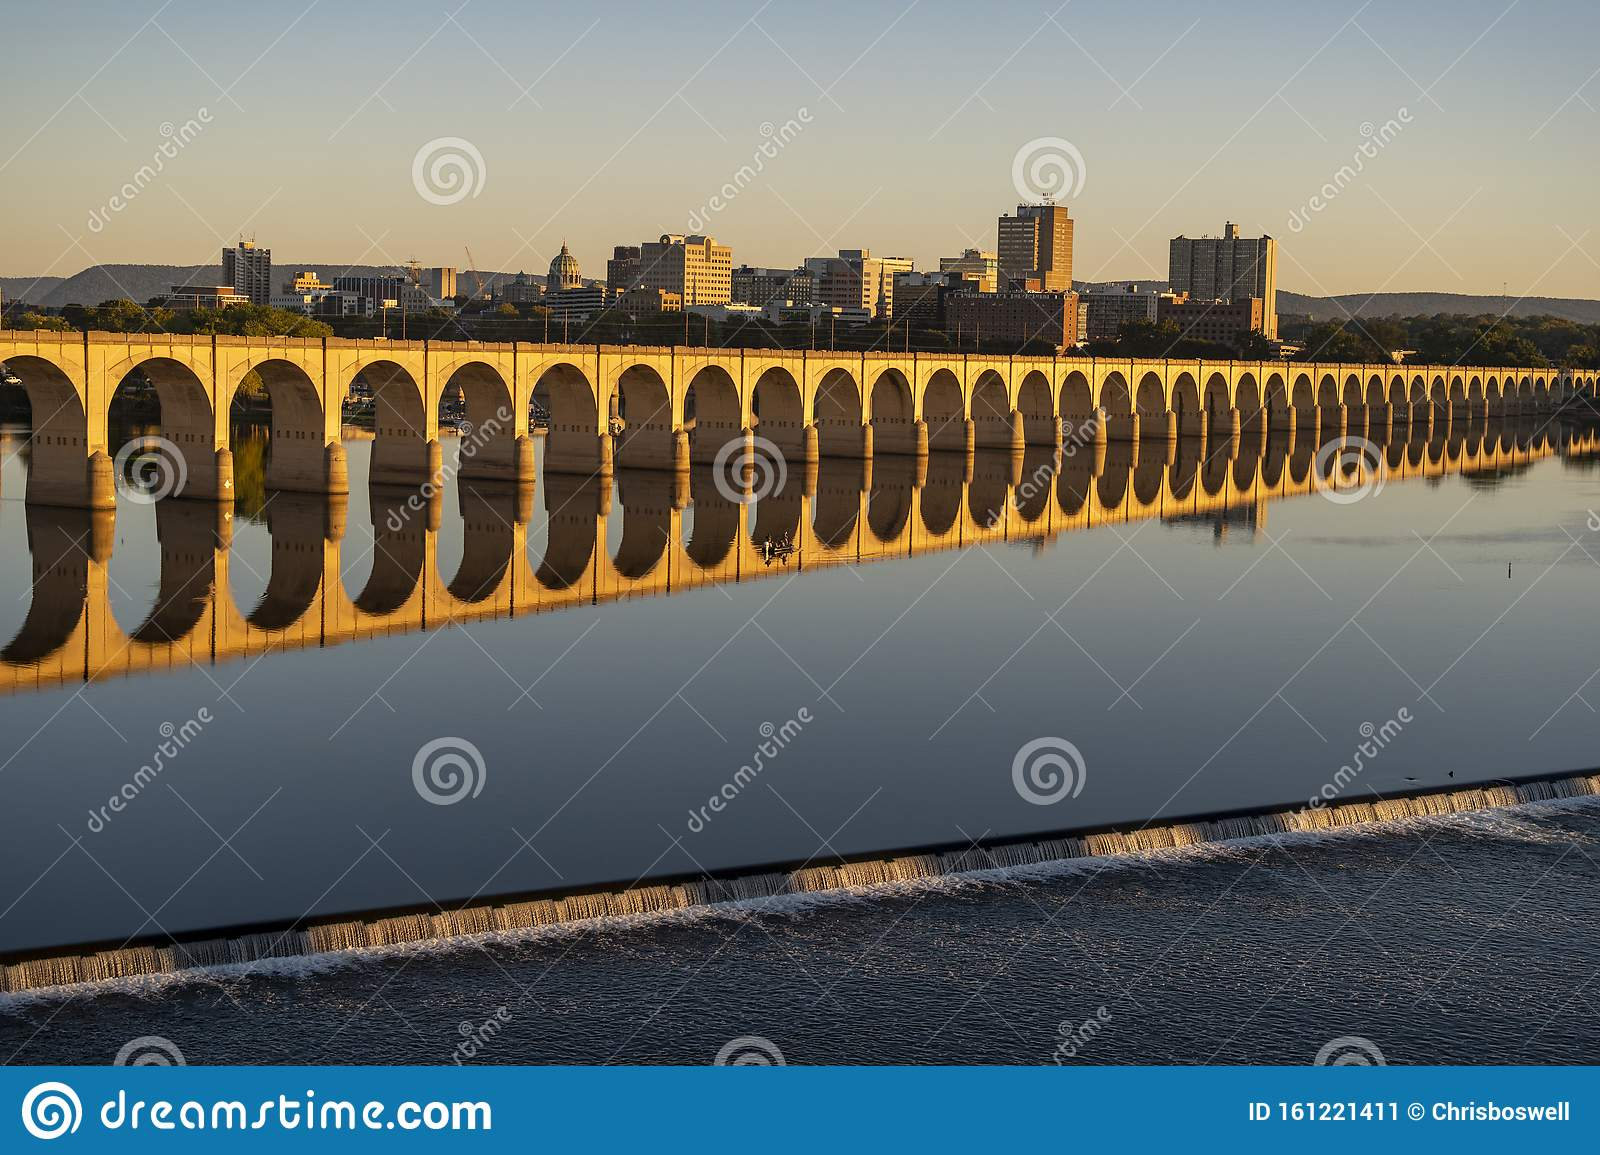 Harrisburg State Capital Of Pennsylvania Along On The Susquehanna River Stock Image Image Of Courthouse Modern 161221411